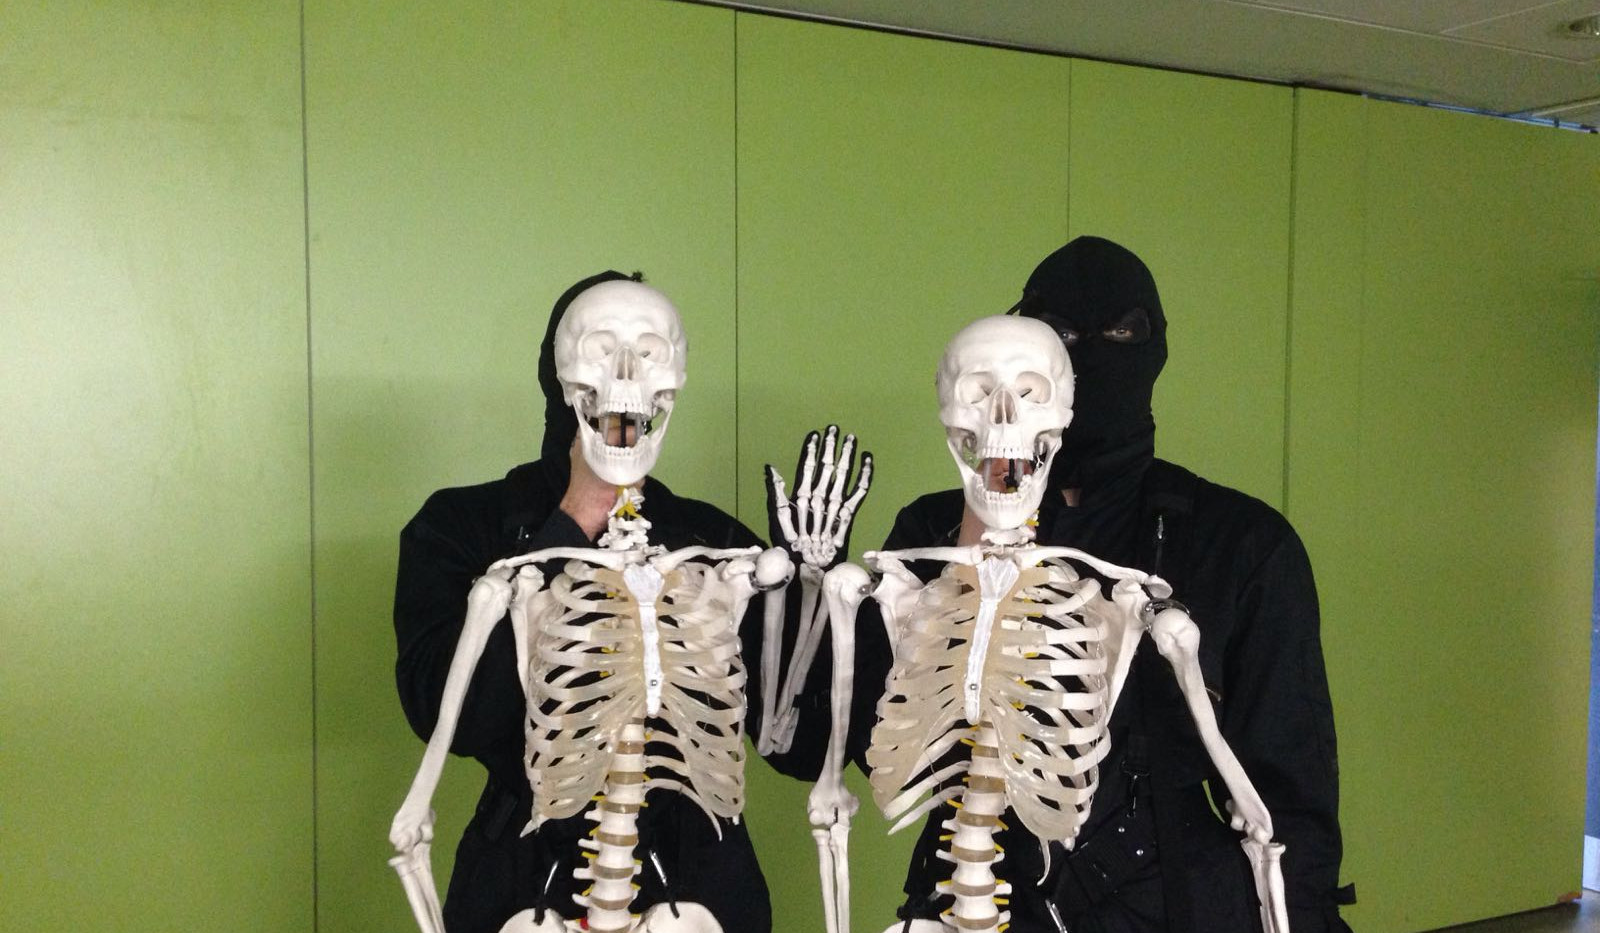 Skeletons up in action